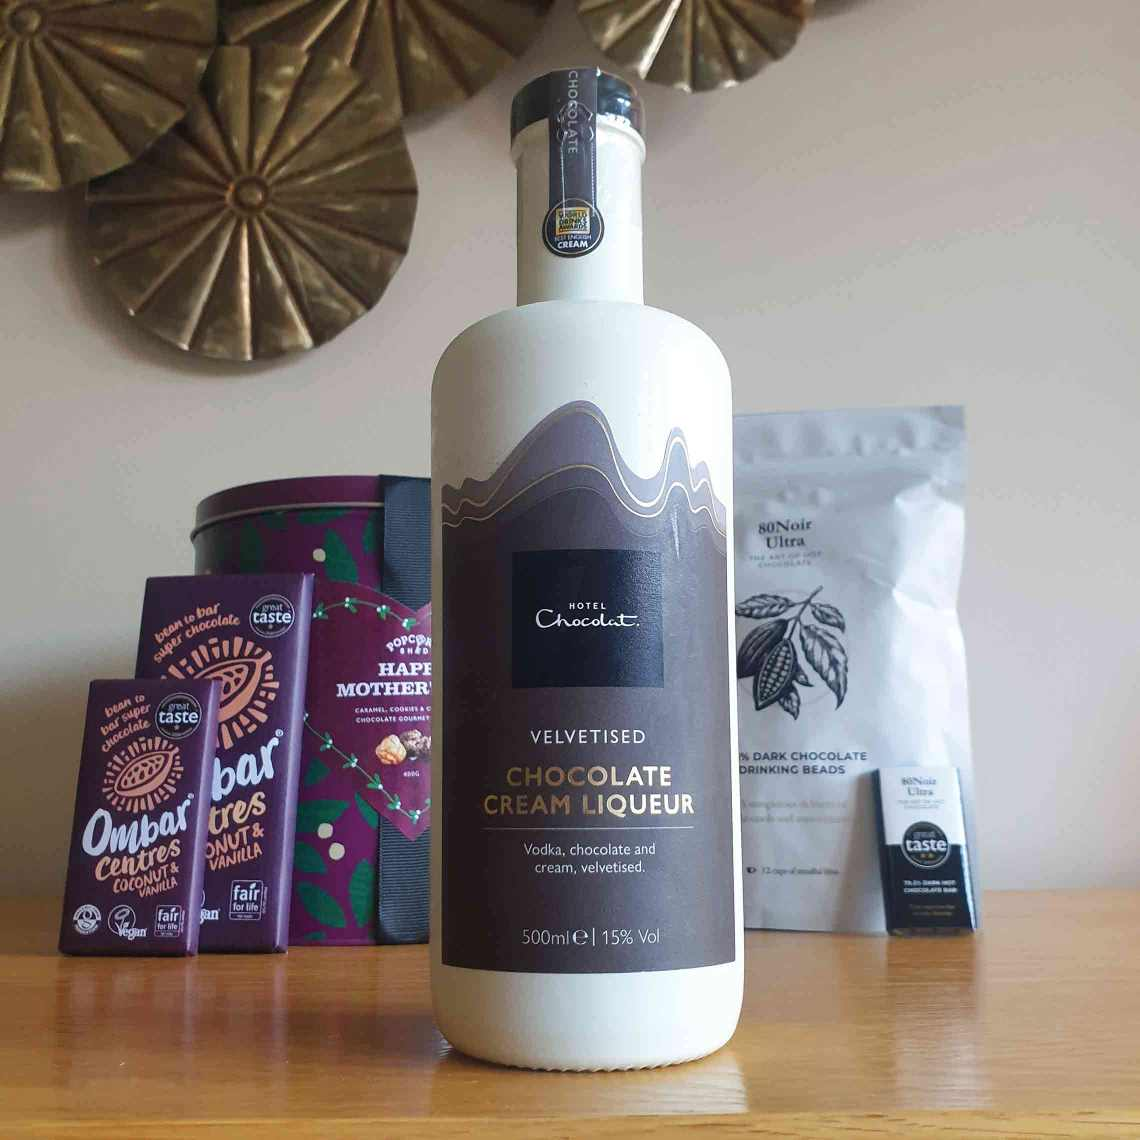 Hotel Chocolat Velvetised Chocolate Cream Liqueur. The Best Foodie Mother's Day Gifts.